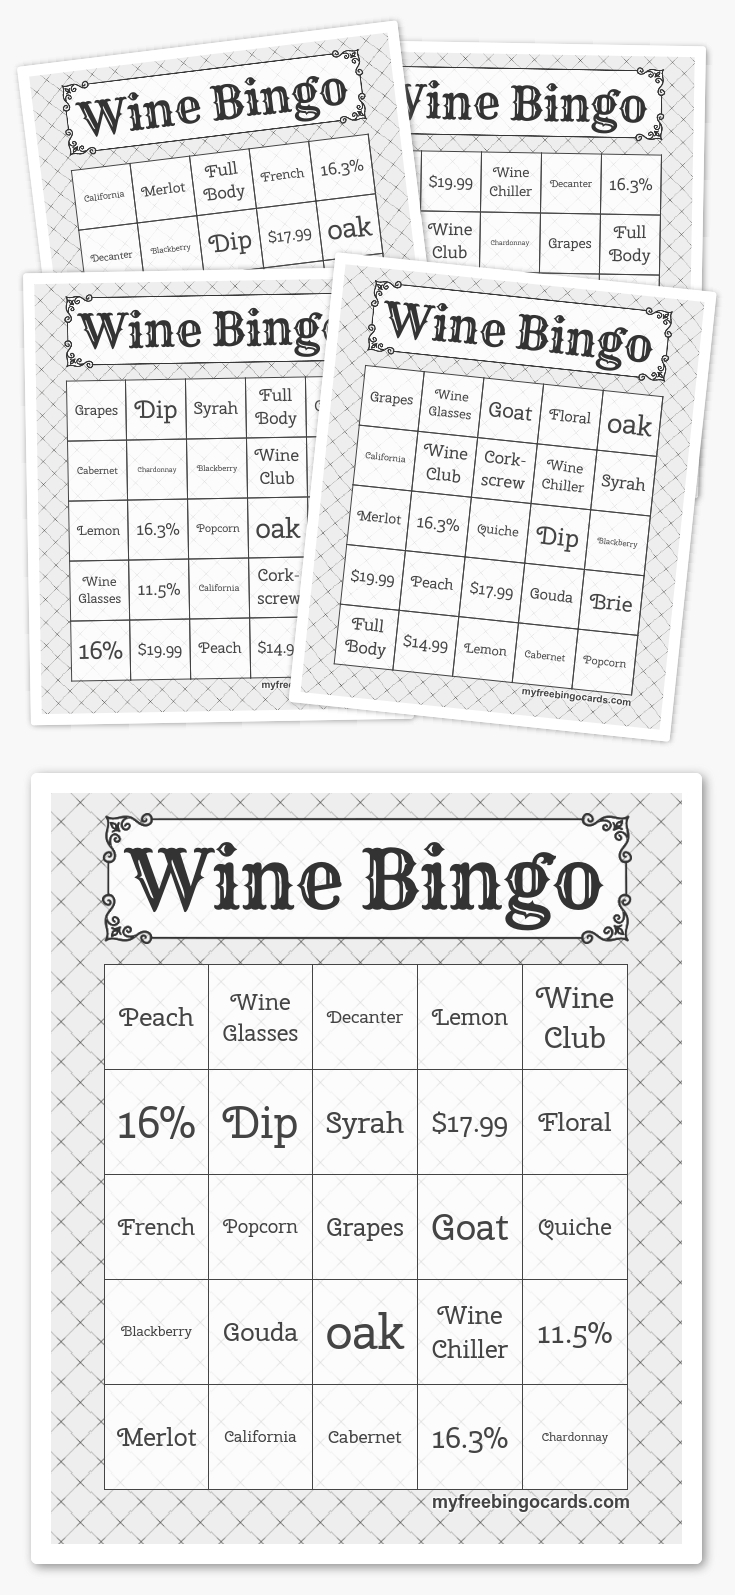 Free Printable Bingo Cards In 2020 | Free Printable Bingo